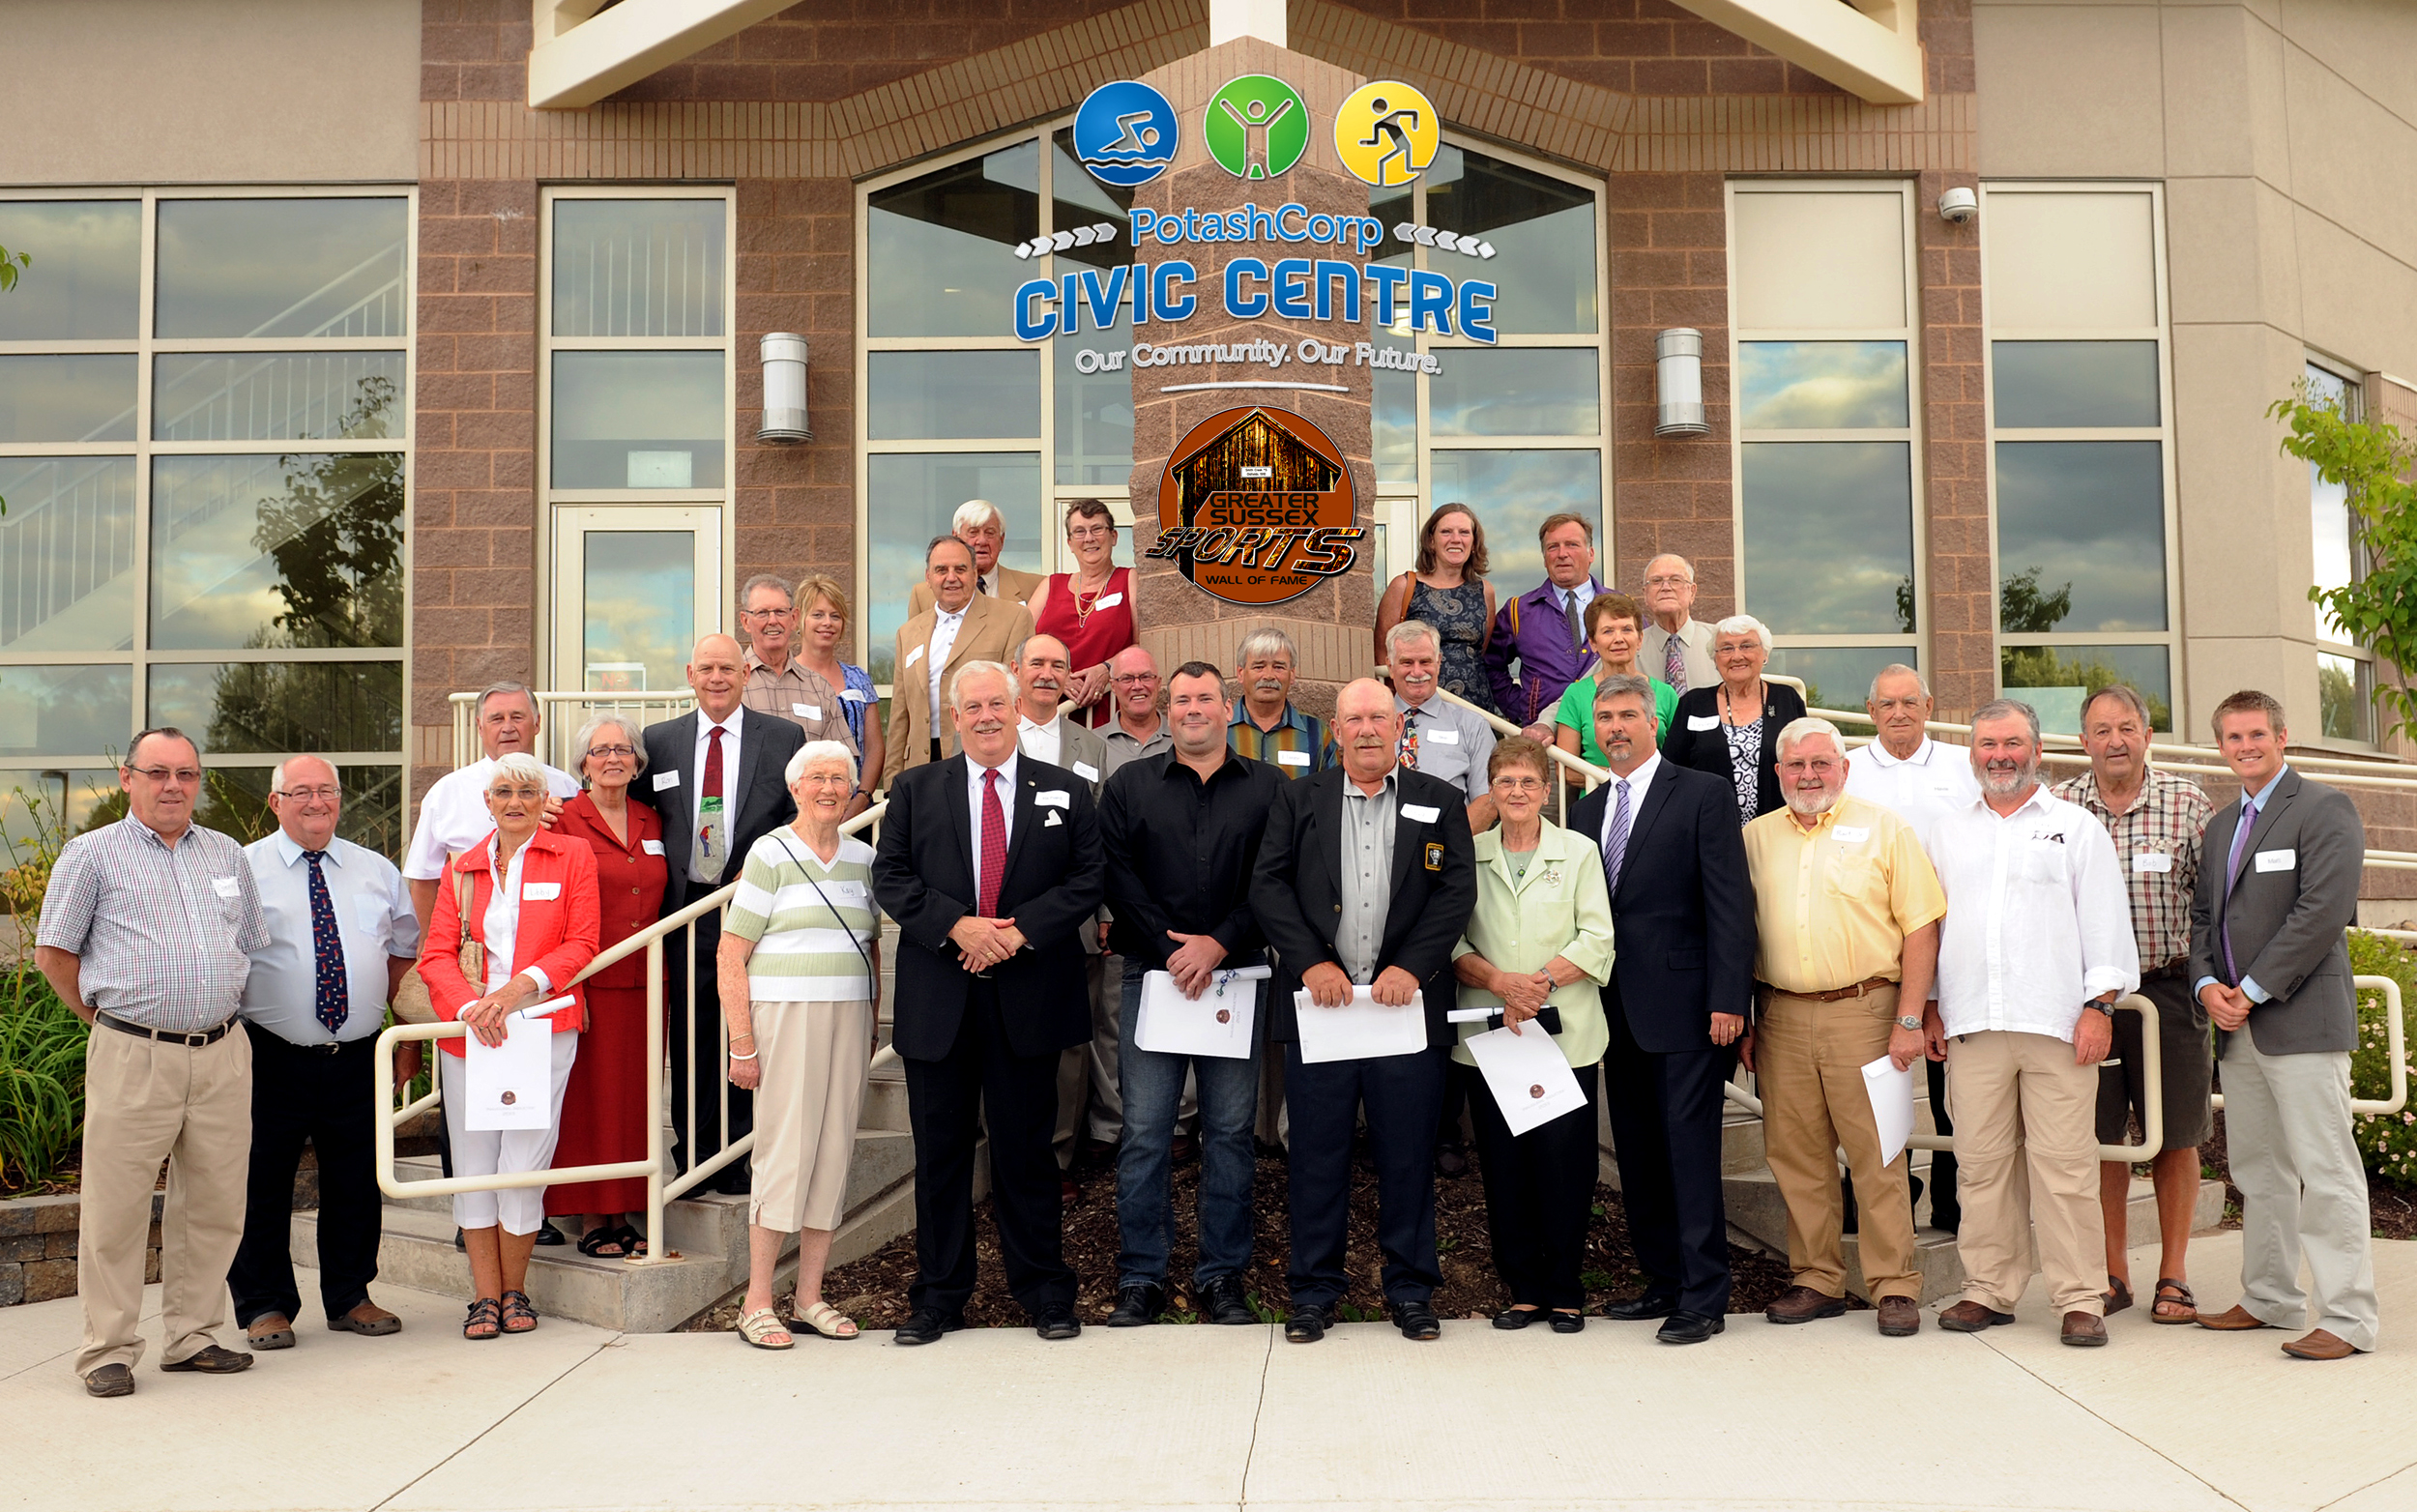 GROUP PHOTOGRAPH OUTSIDE CENTER WITH LOGOS.jpg